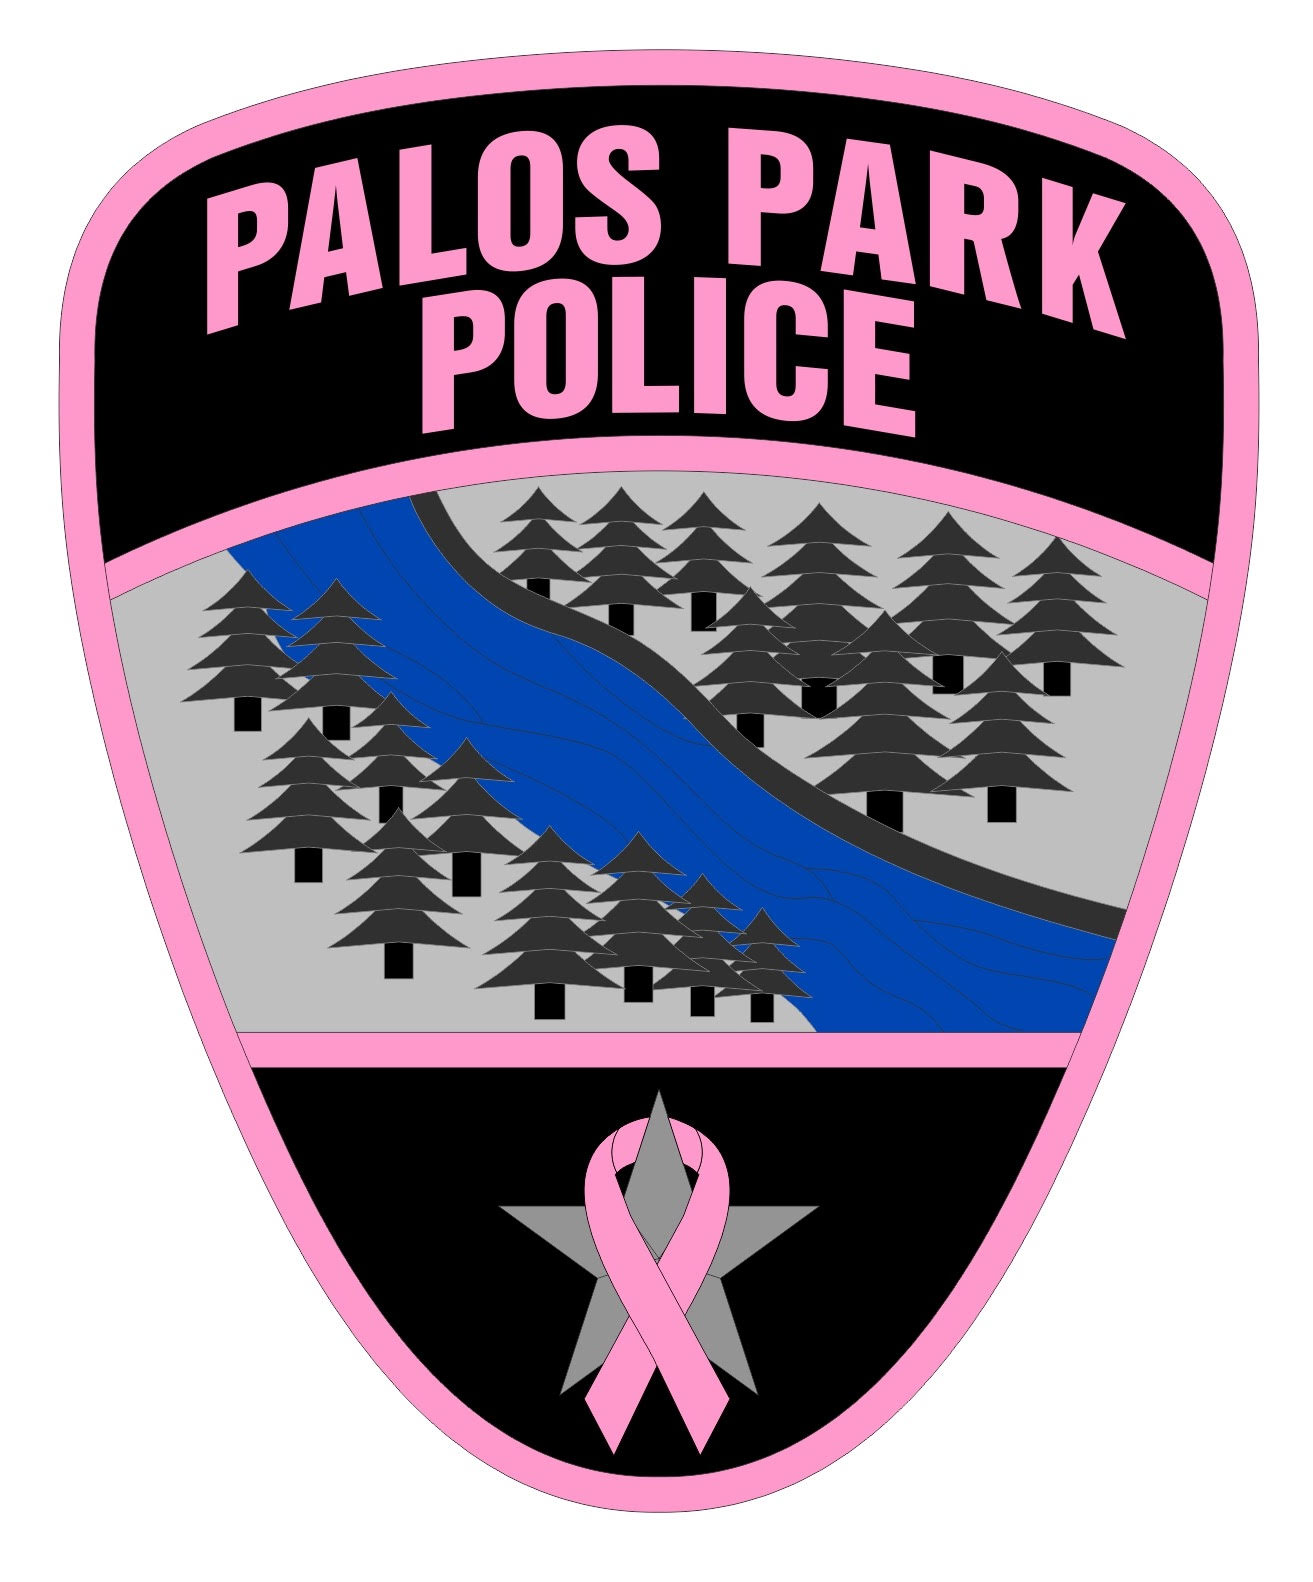 palos park dating site Single palos park members interested in date dating are you looking for palos park members check out the the newest members below and you may just find your perfect partner start a conversation and arrange to meet up this week we have 1000's of singles waiting to meet someone exactly like you.